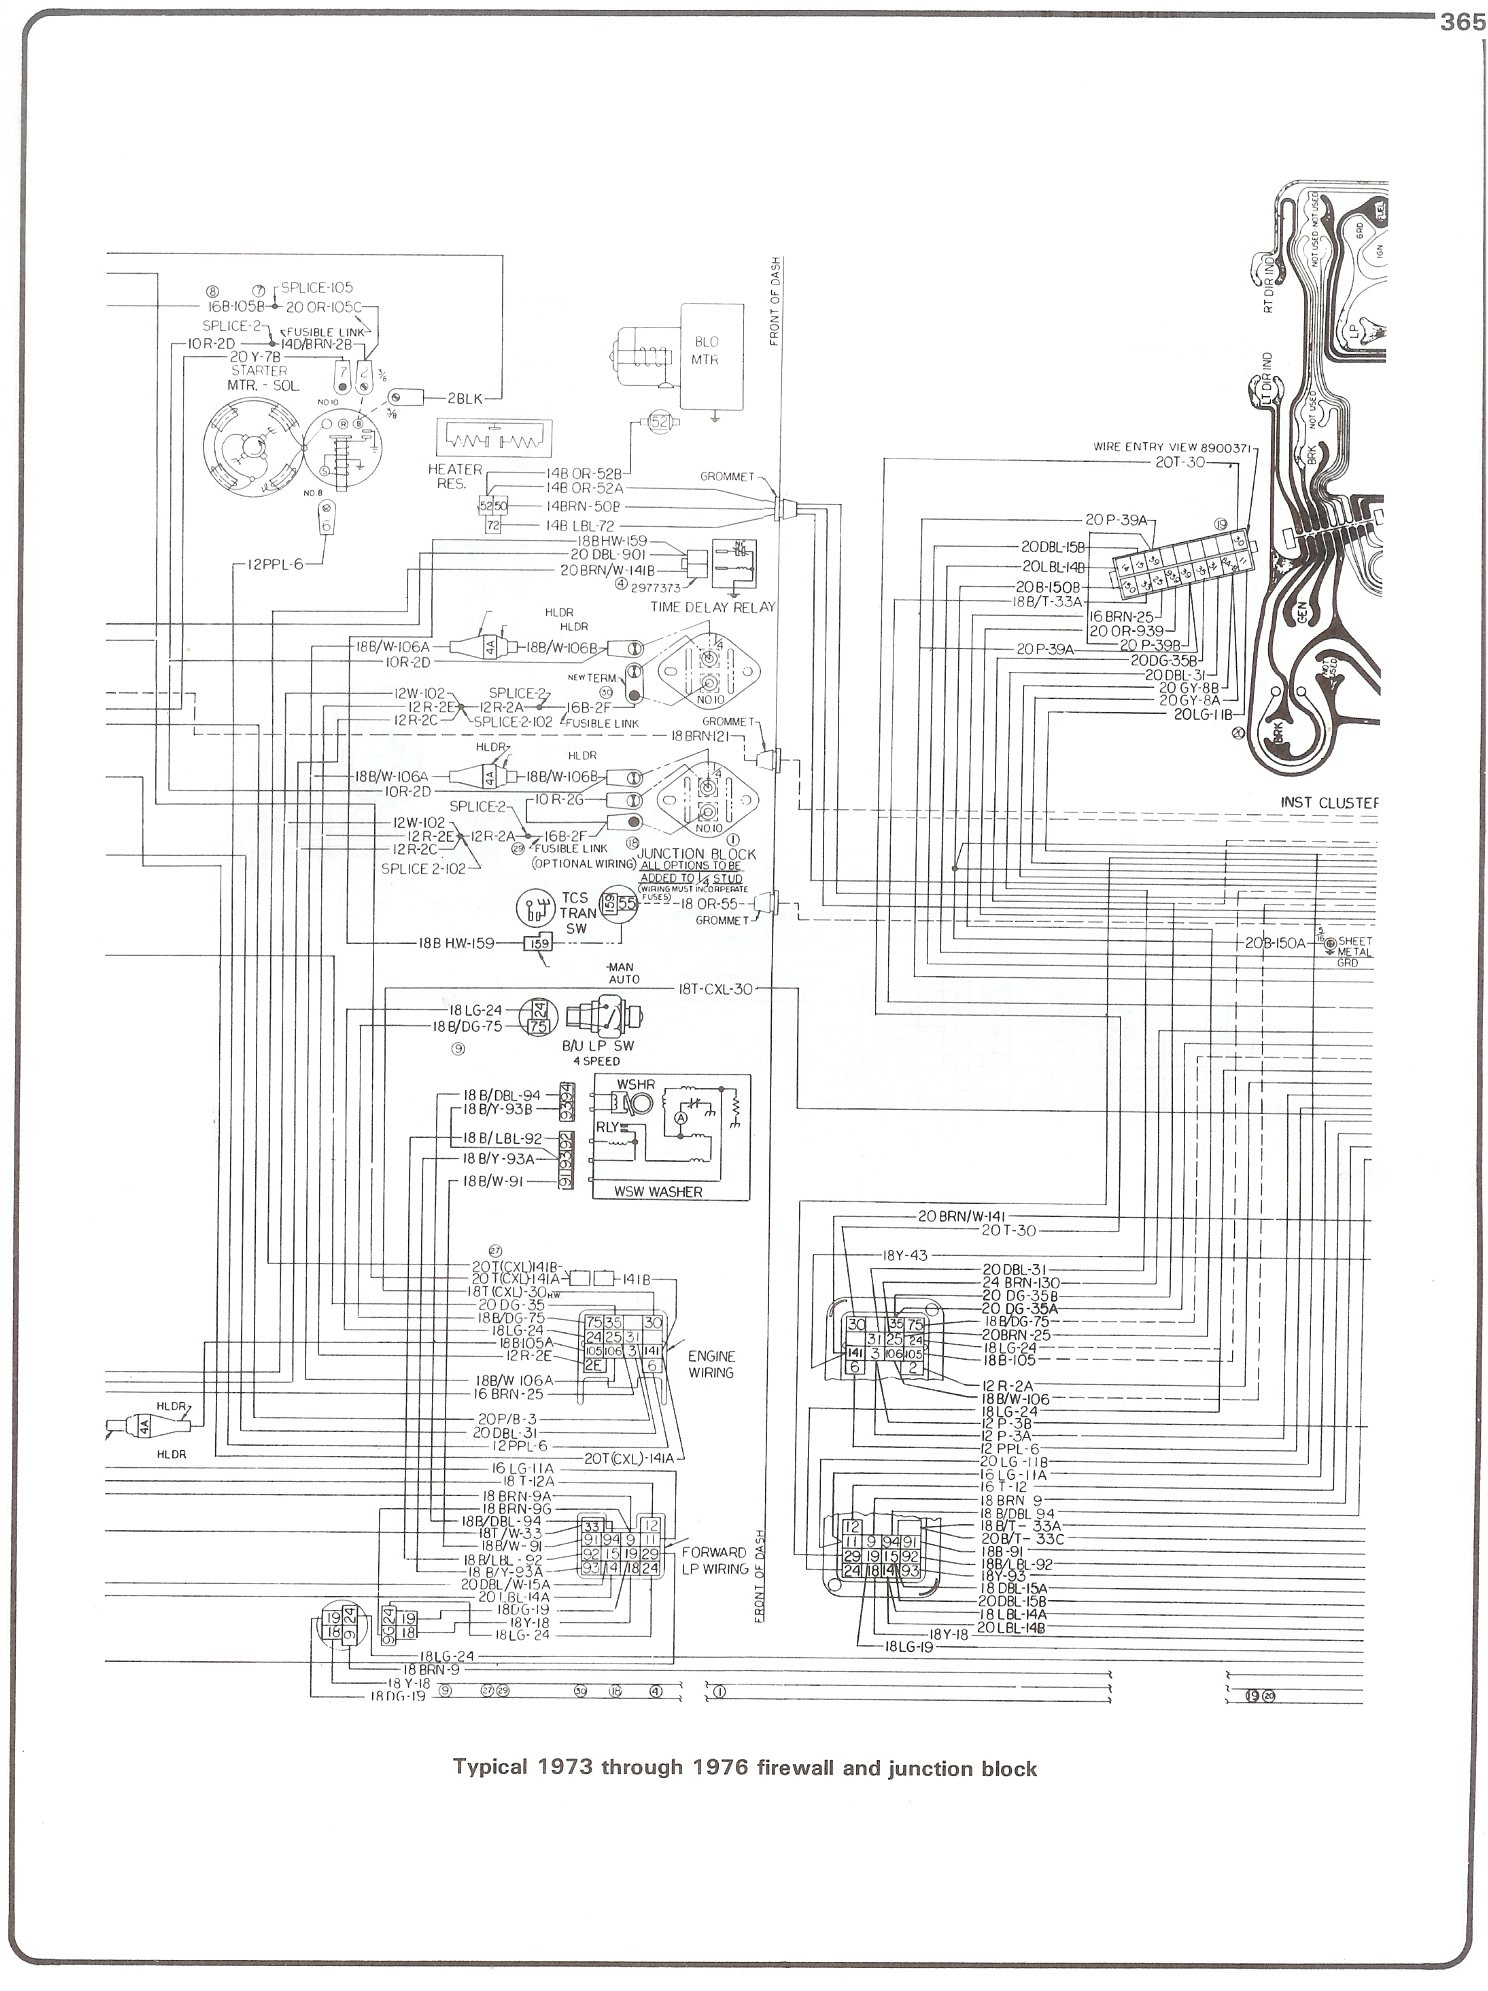 wrg 1056] c wiring diagrams site 73 87 chevy k20